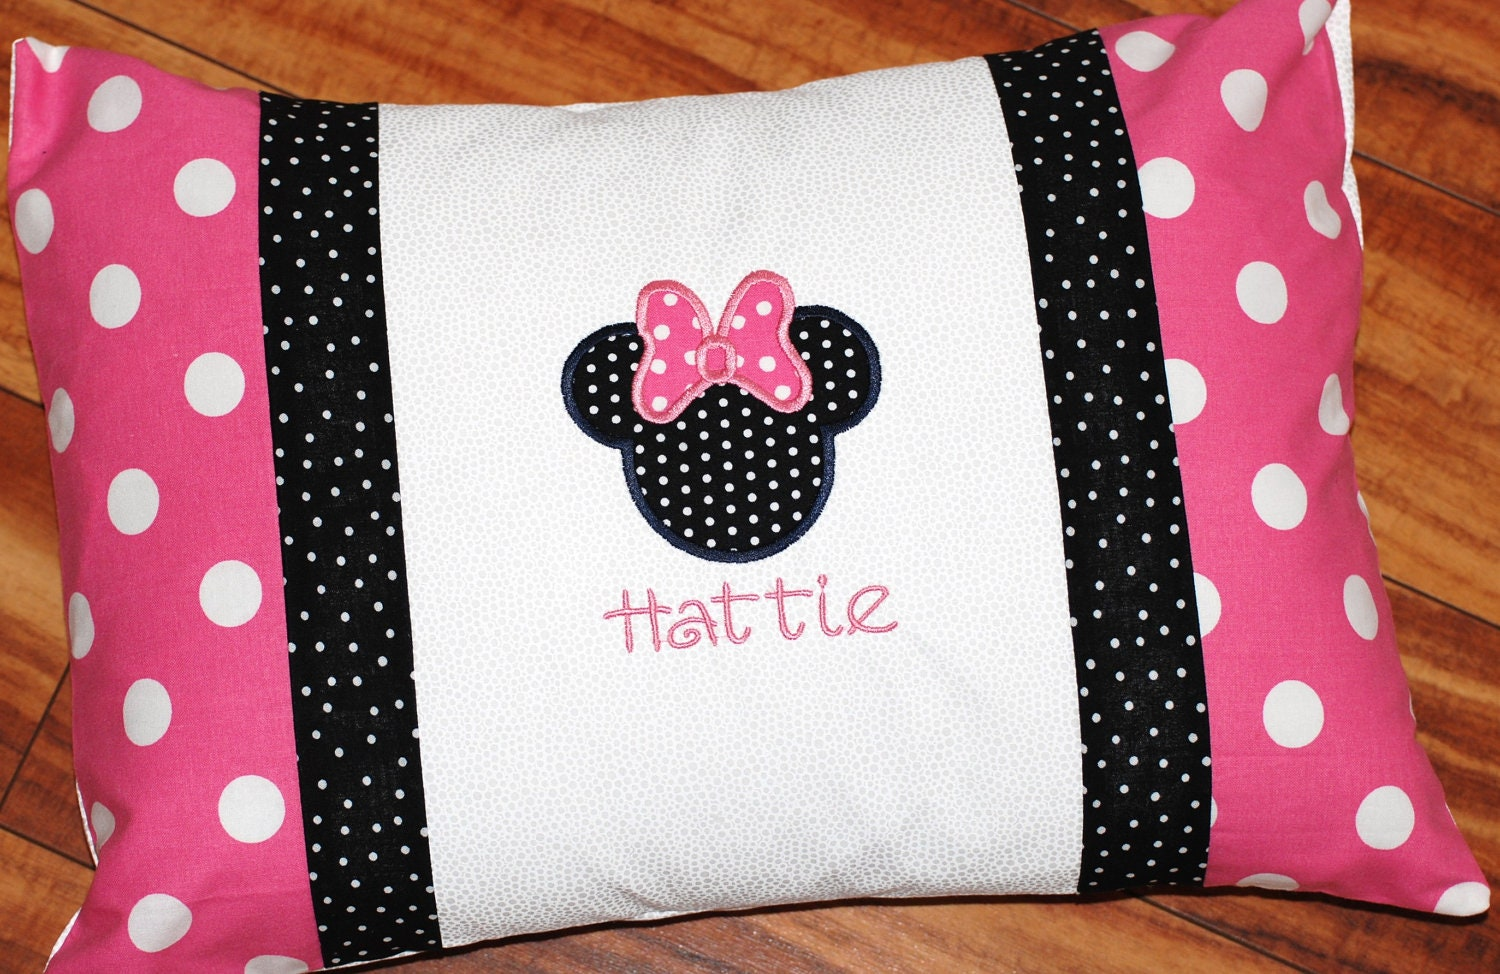 Pillow Case Designs For Baby Boy: Girls or boys personalized Minnie or mickey Mouse pillowcase,